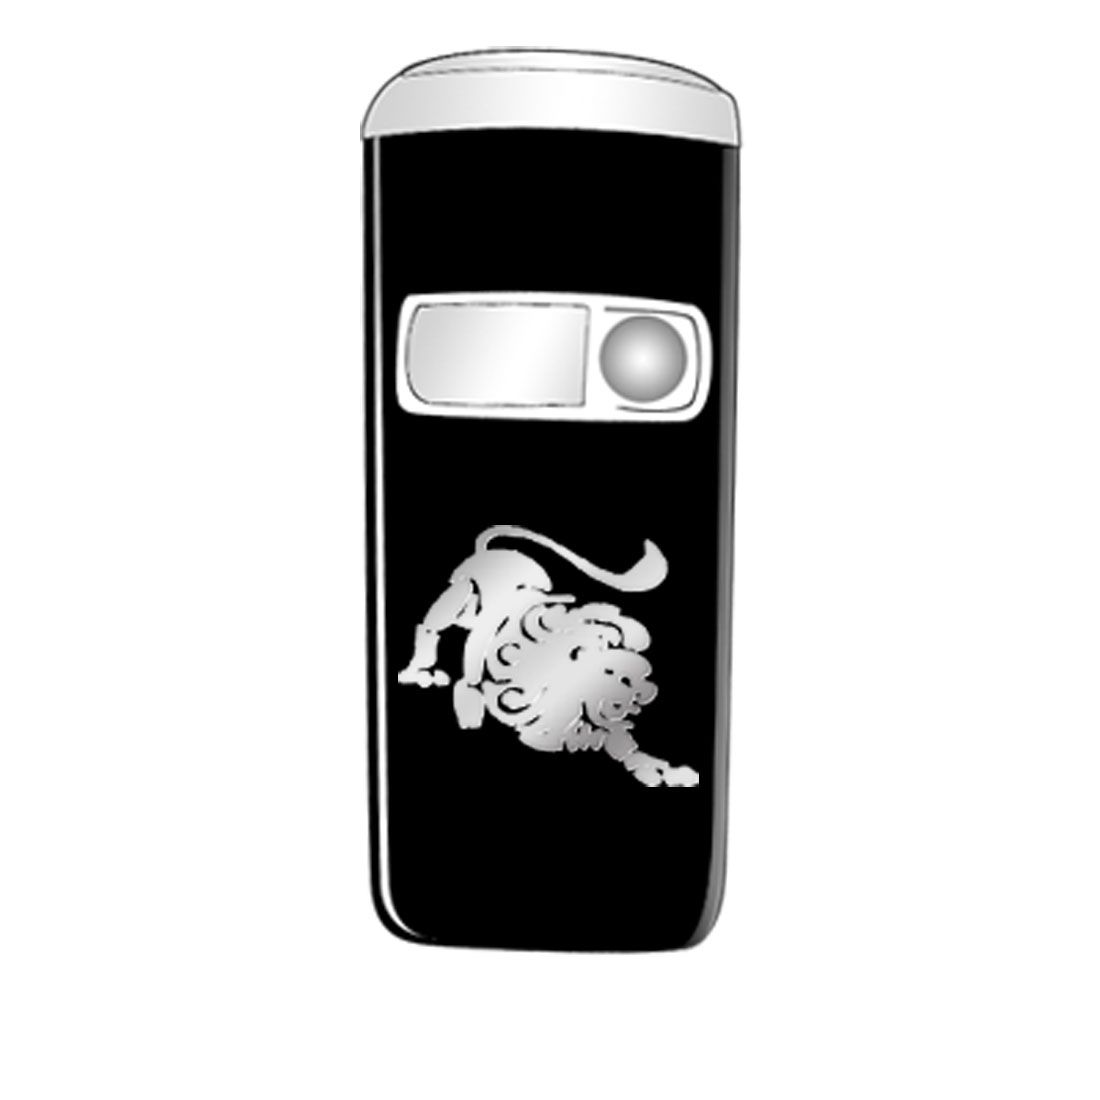 Metallic Sticker for Cell Phone NDS MP4 Mp5 Player - Leo